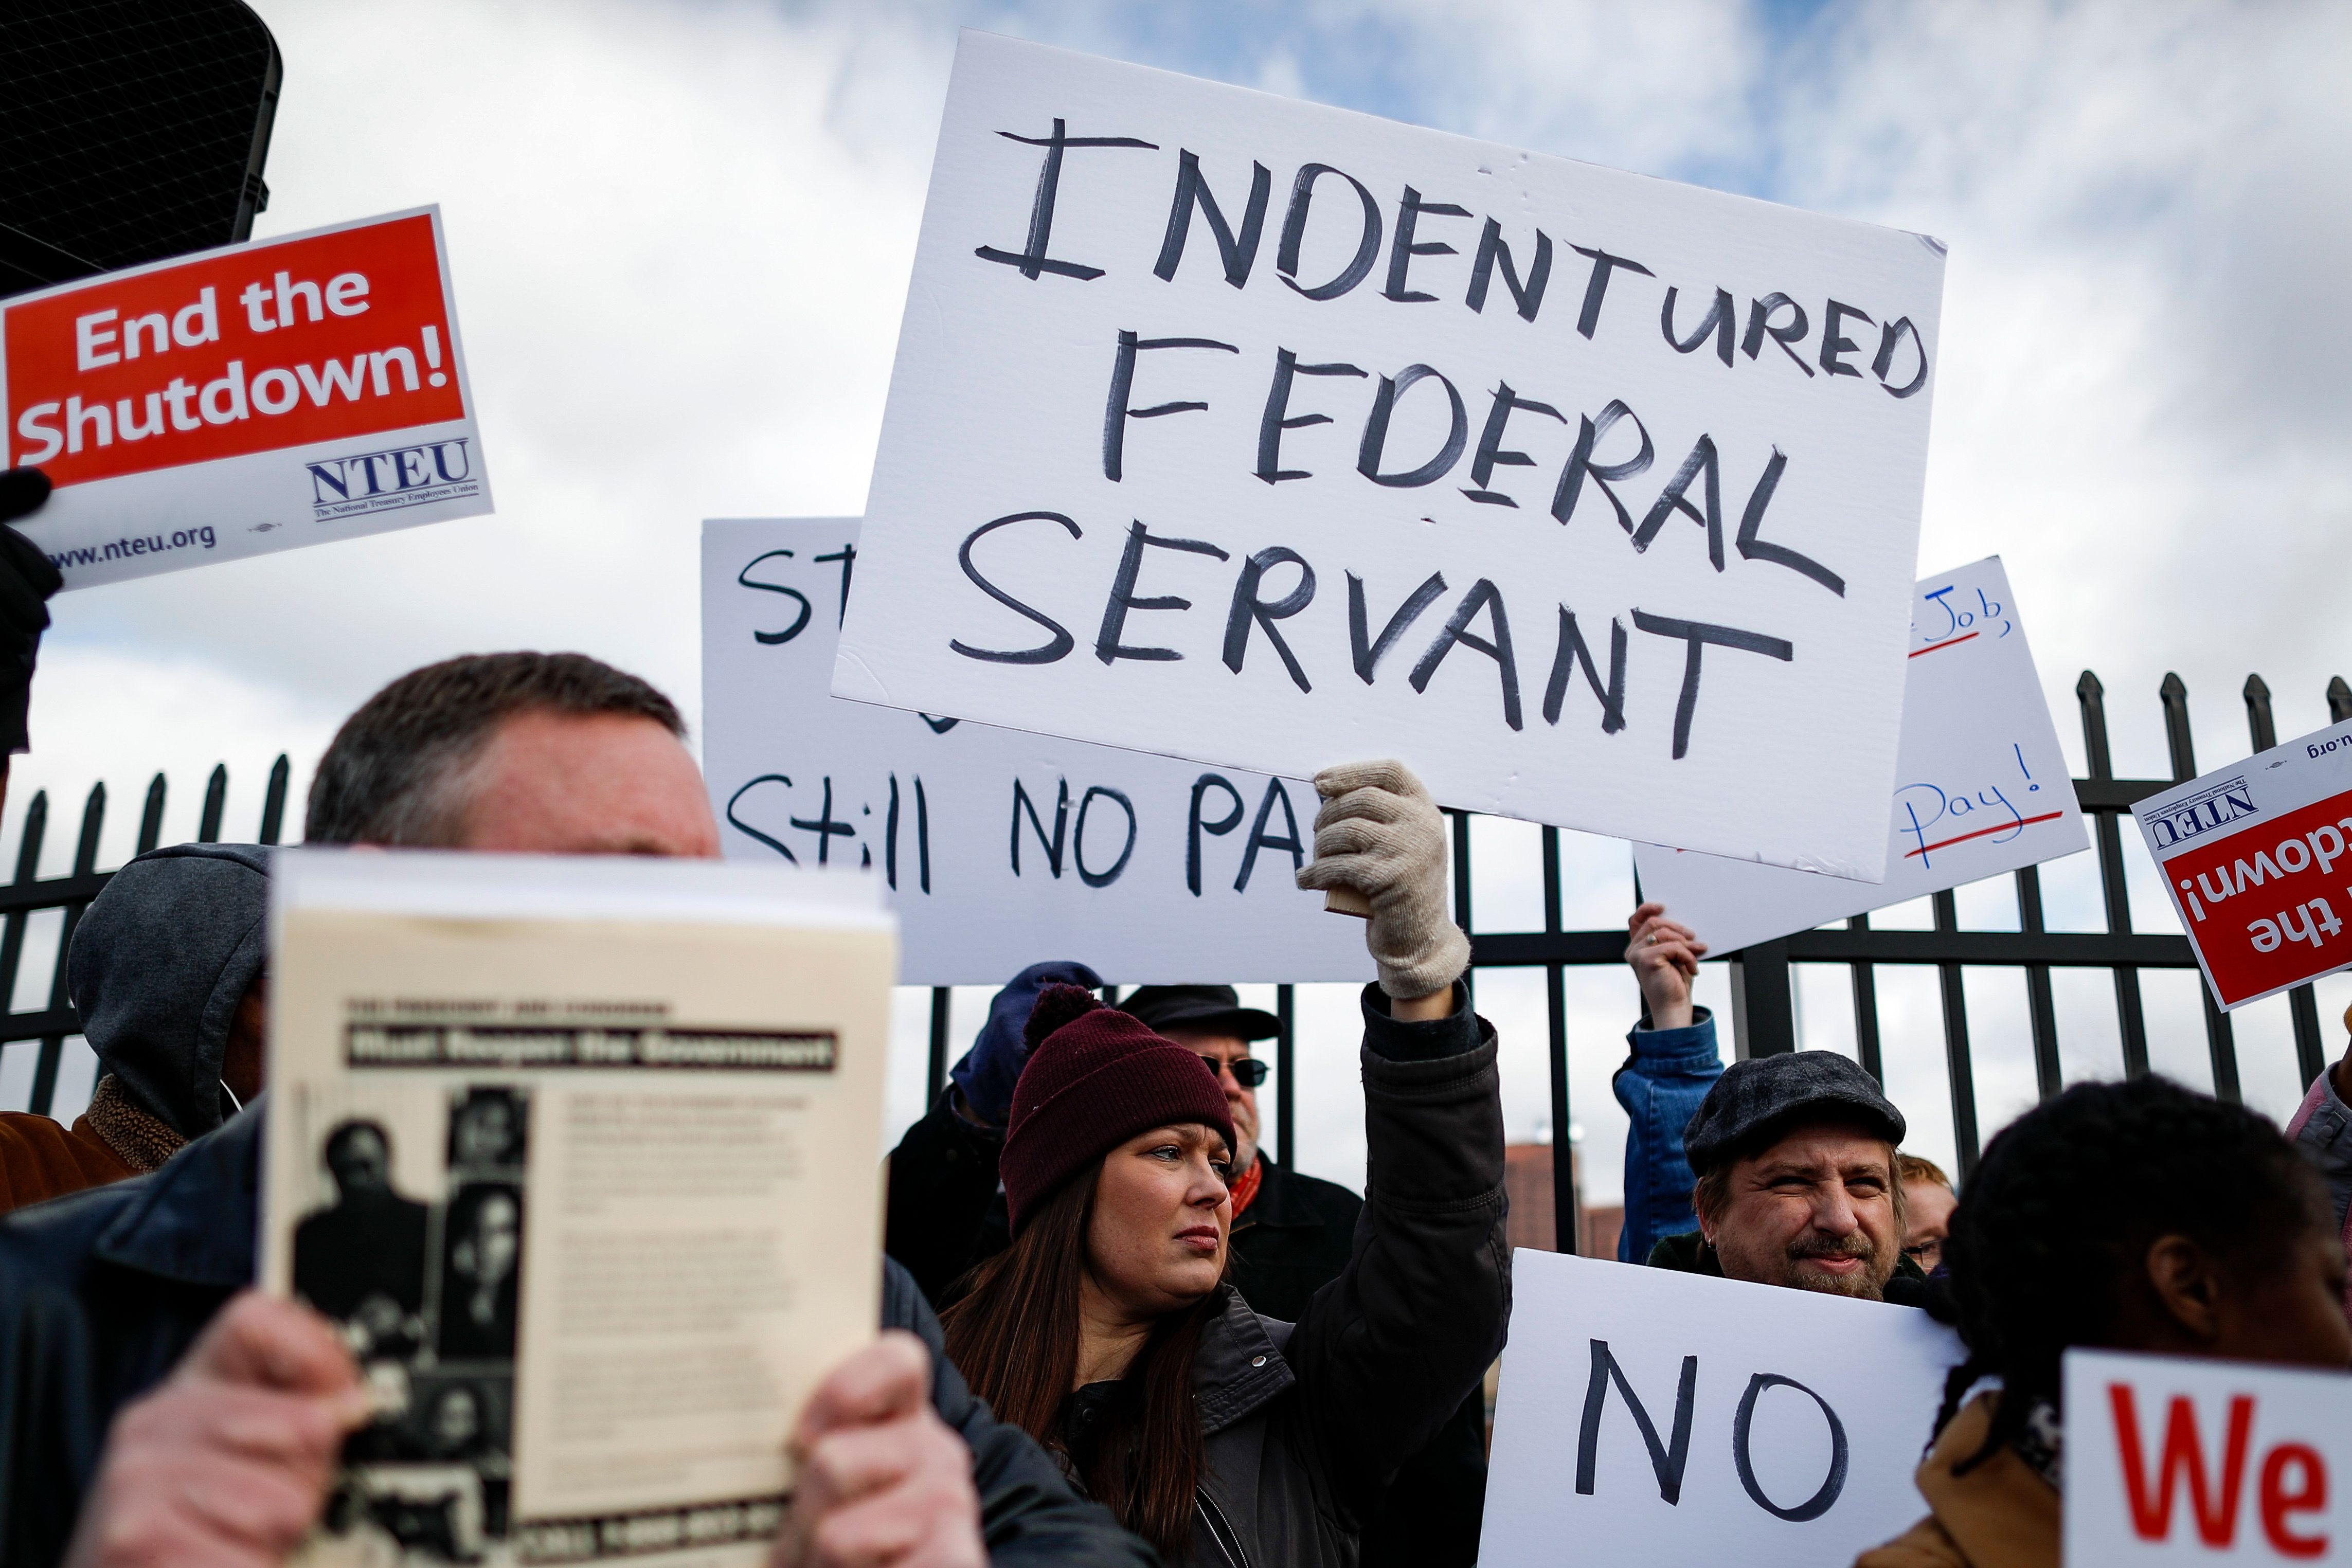 Union members and Internal Revenue Service workers rally outside an IRS Service Center to call for an end to the partial government shutdown, Thursday, Jan. 10, 2019, in Covington, Ky. (AP Photo/John Minchillo)